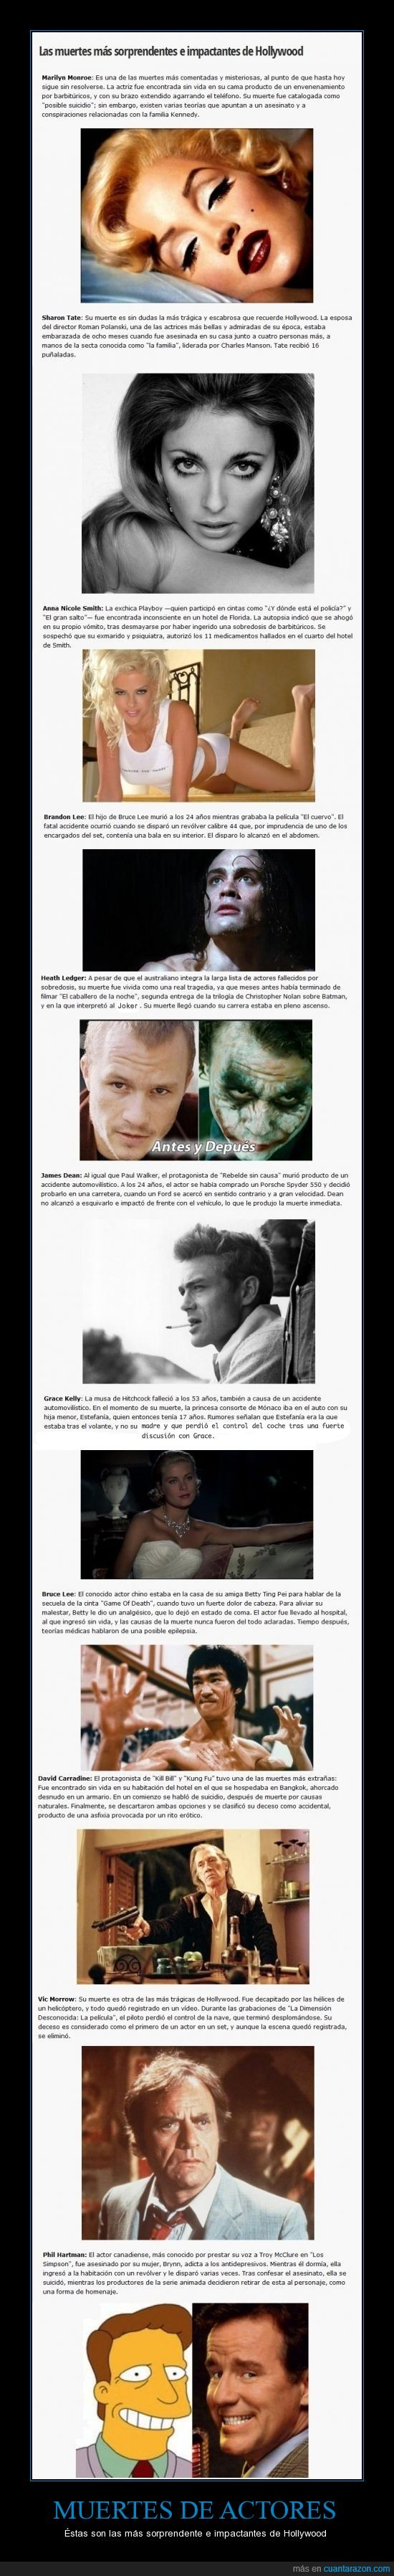 actores,brandon lee,bruce lee,carradine,explicacion,famosos,hay 11 no 10,james dean,marilyn monroe,muerte,sharon tate,tragicas,trou mclure